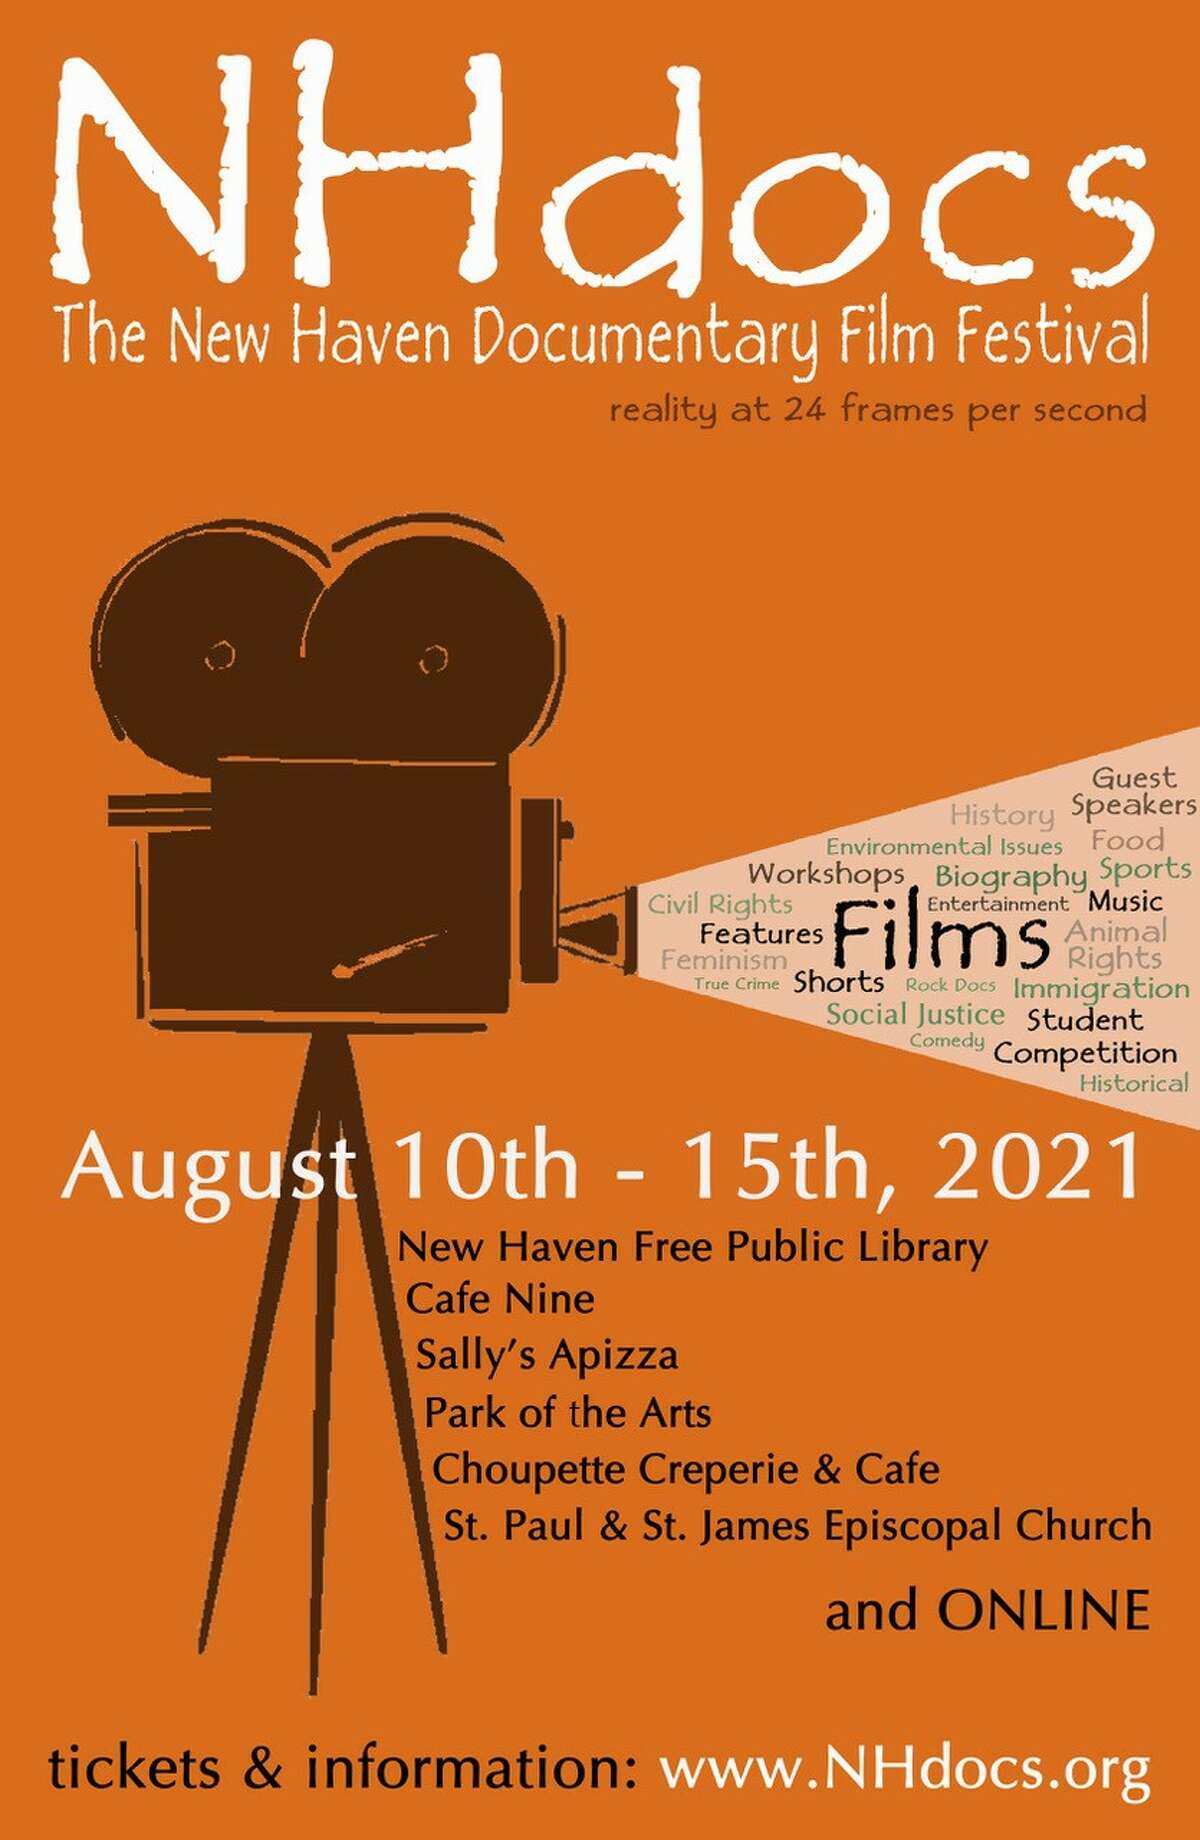 More than 100 films are coming to this year's New Haven Documentary Film Festival August 10 through 15.